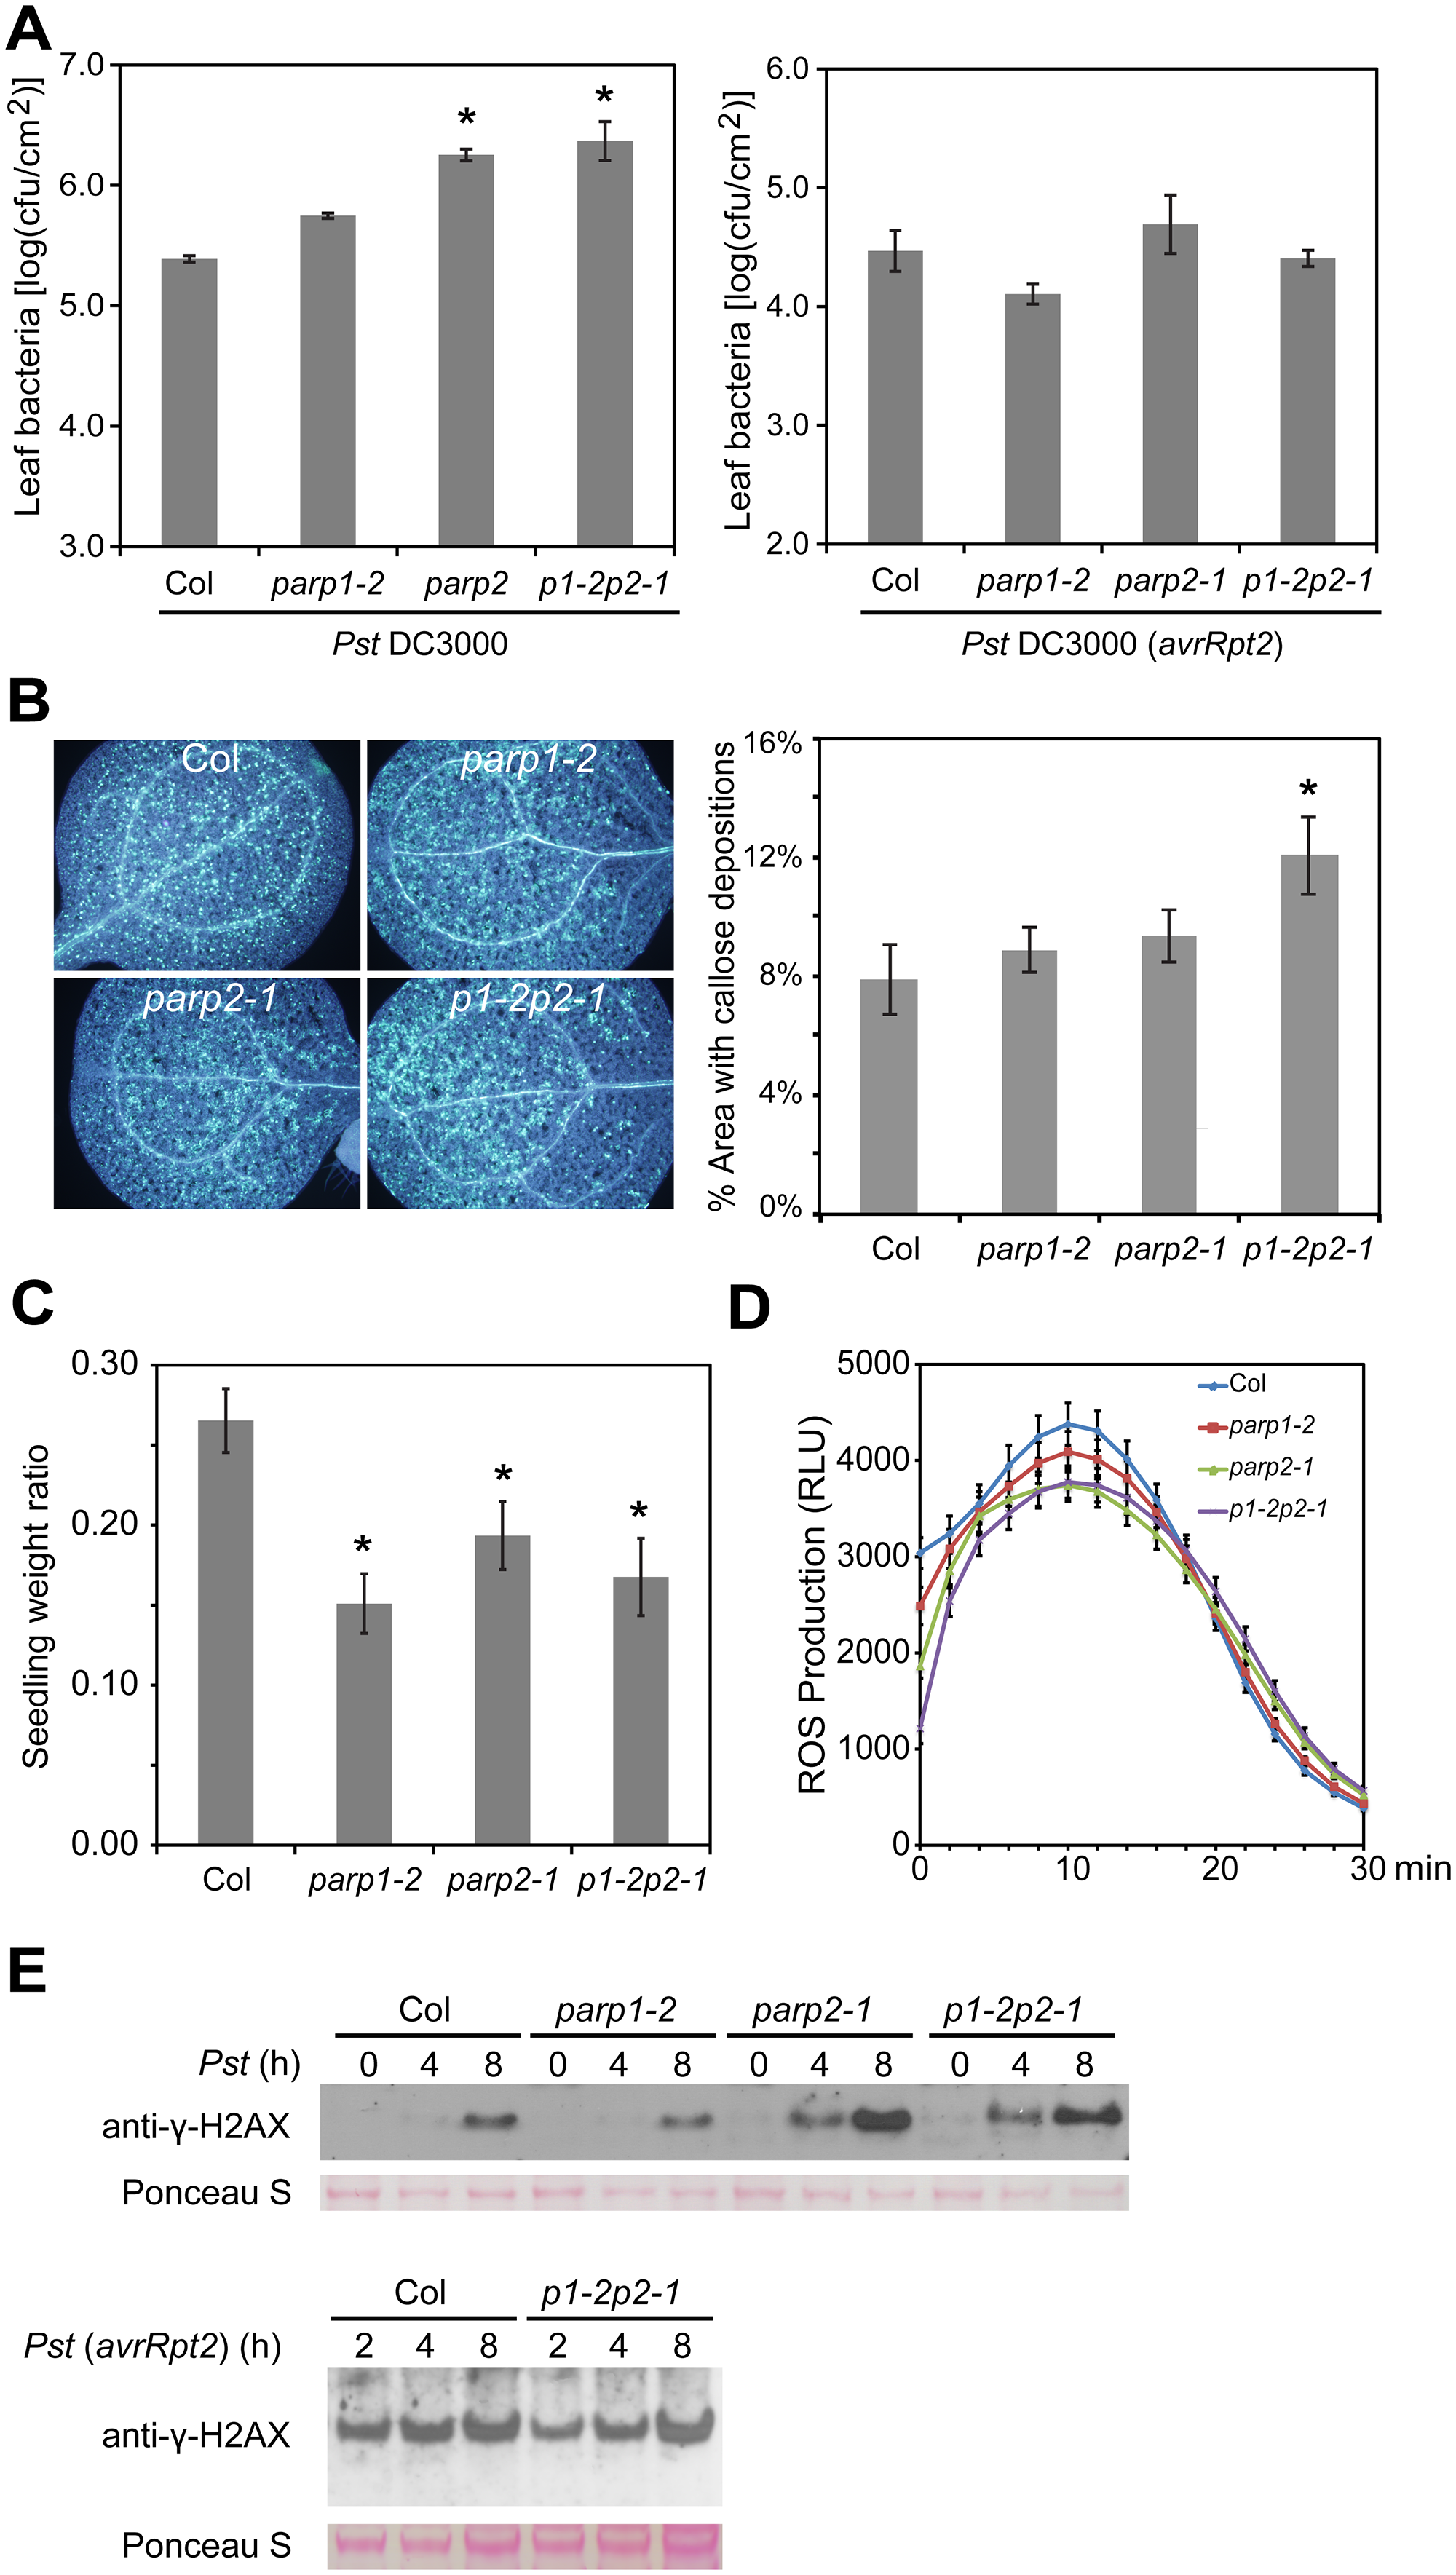 Arabidopsis <i>parp</i> mutants are compromised in basal resistance.